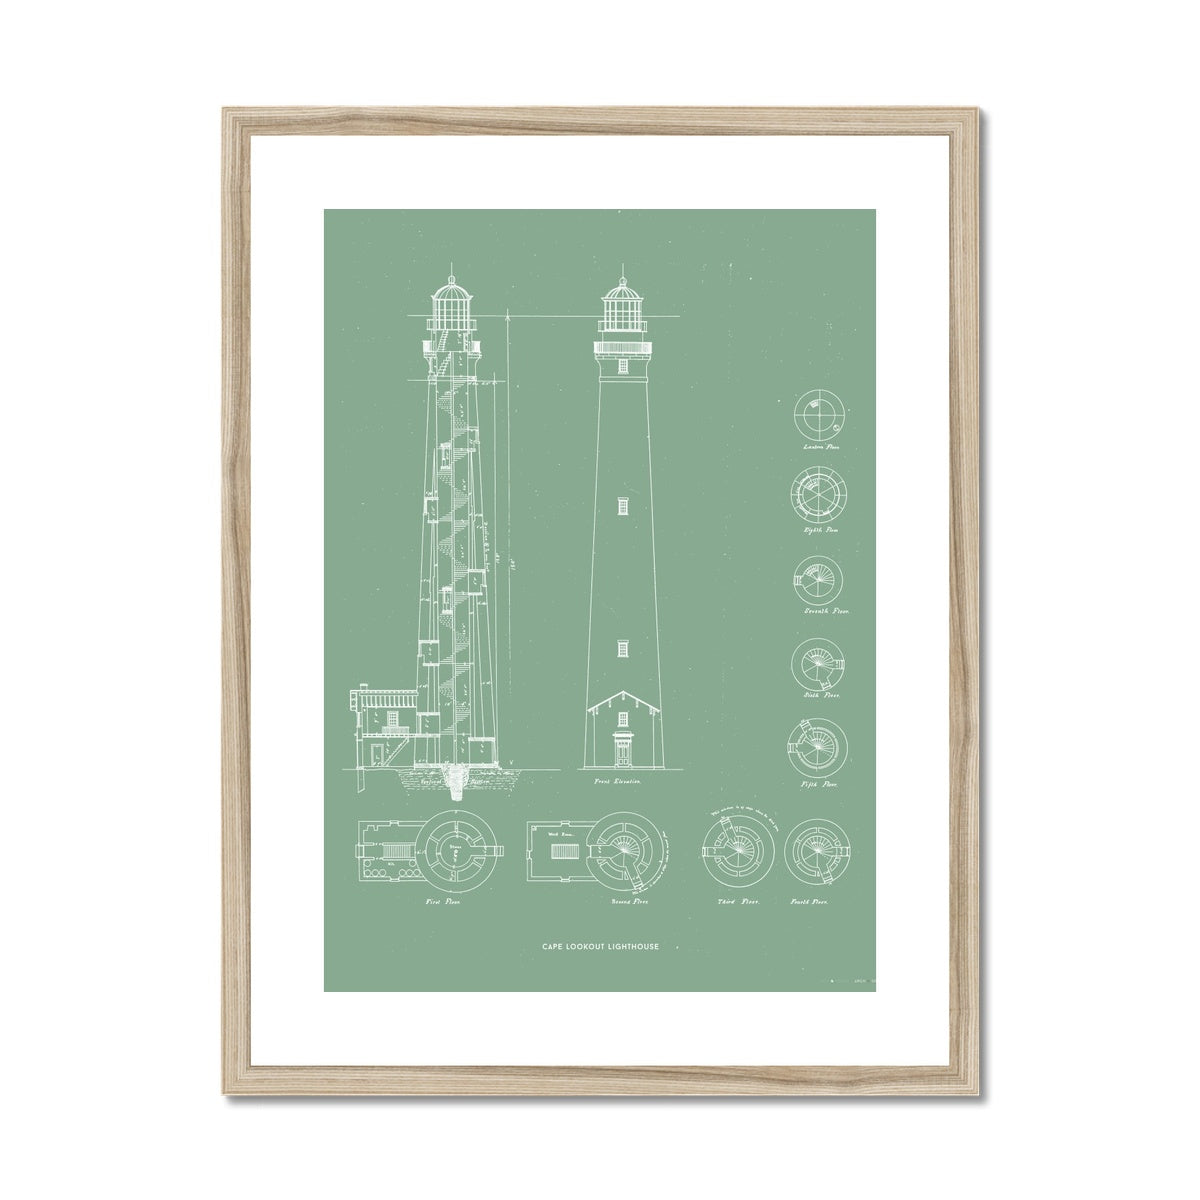 Cape Lookout Lighthouse - Construction Drawings - Green -  Framed & Mounted Print